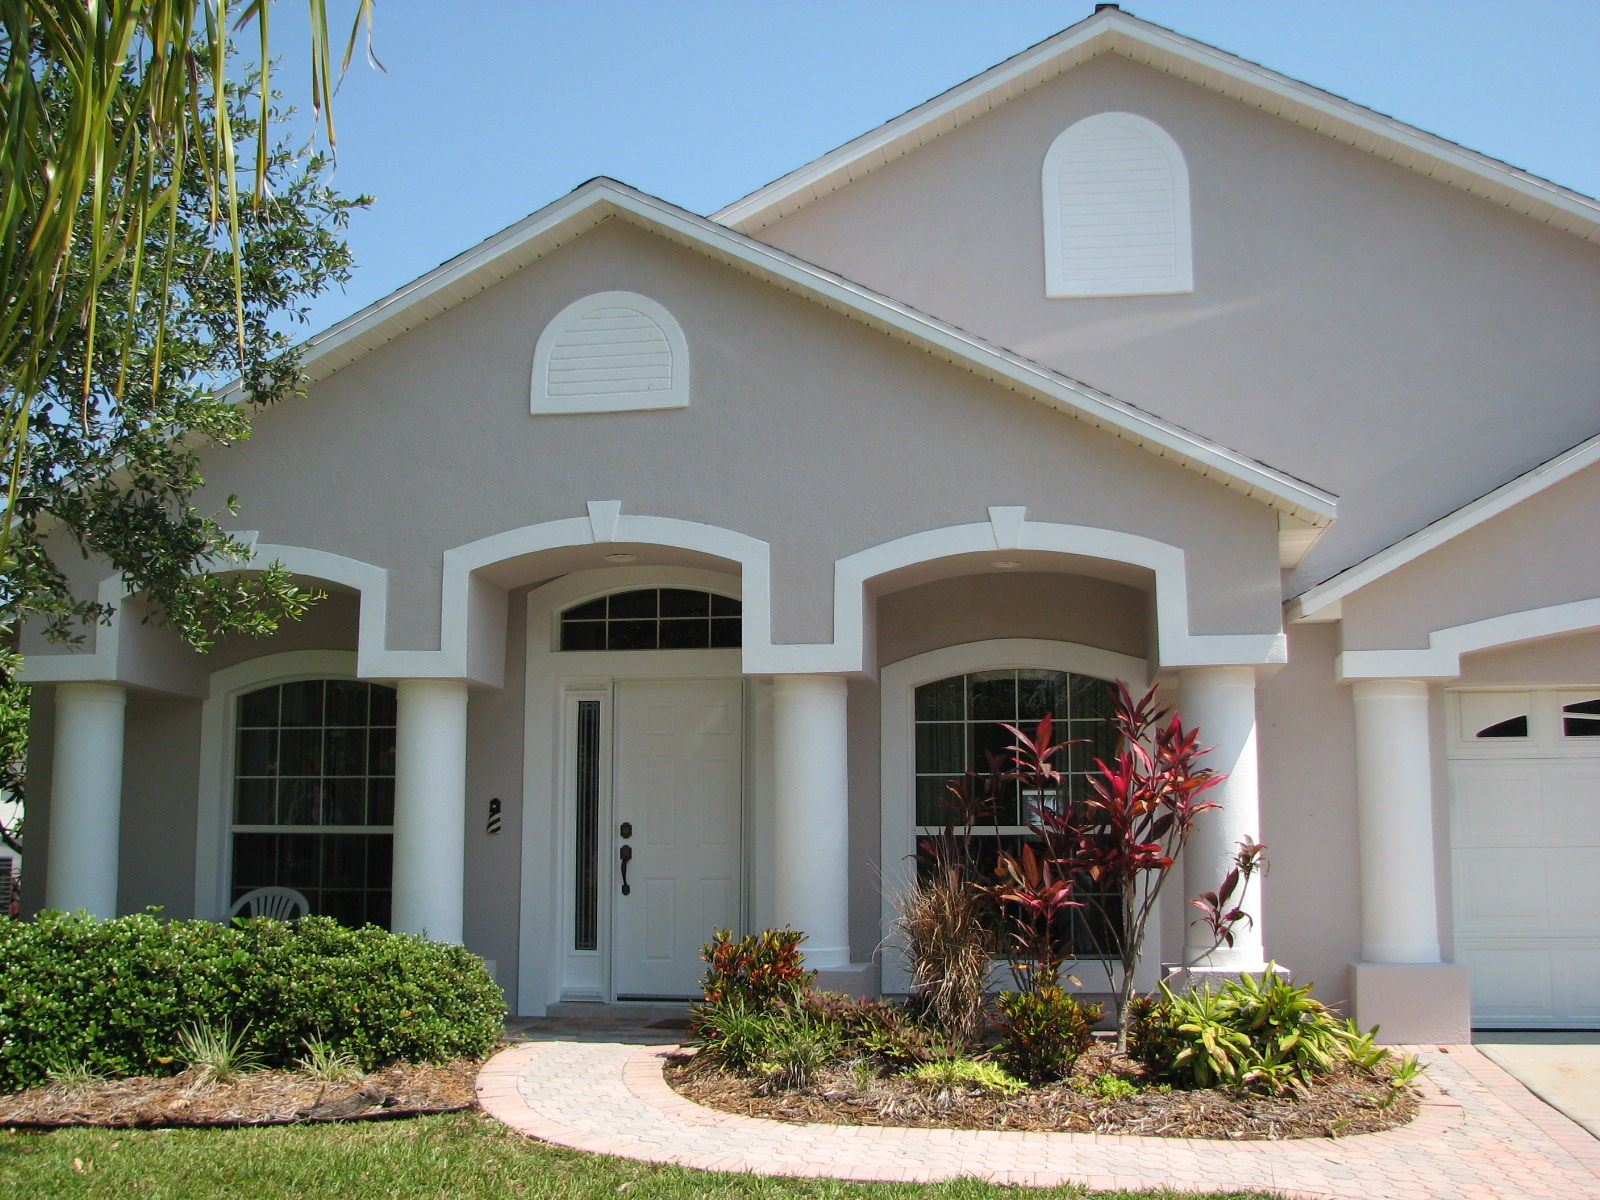 Stucco Repair Melbourne Fl Stucco Cracks Bulging Stucco